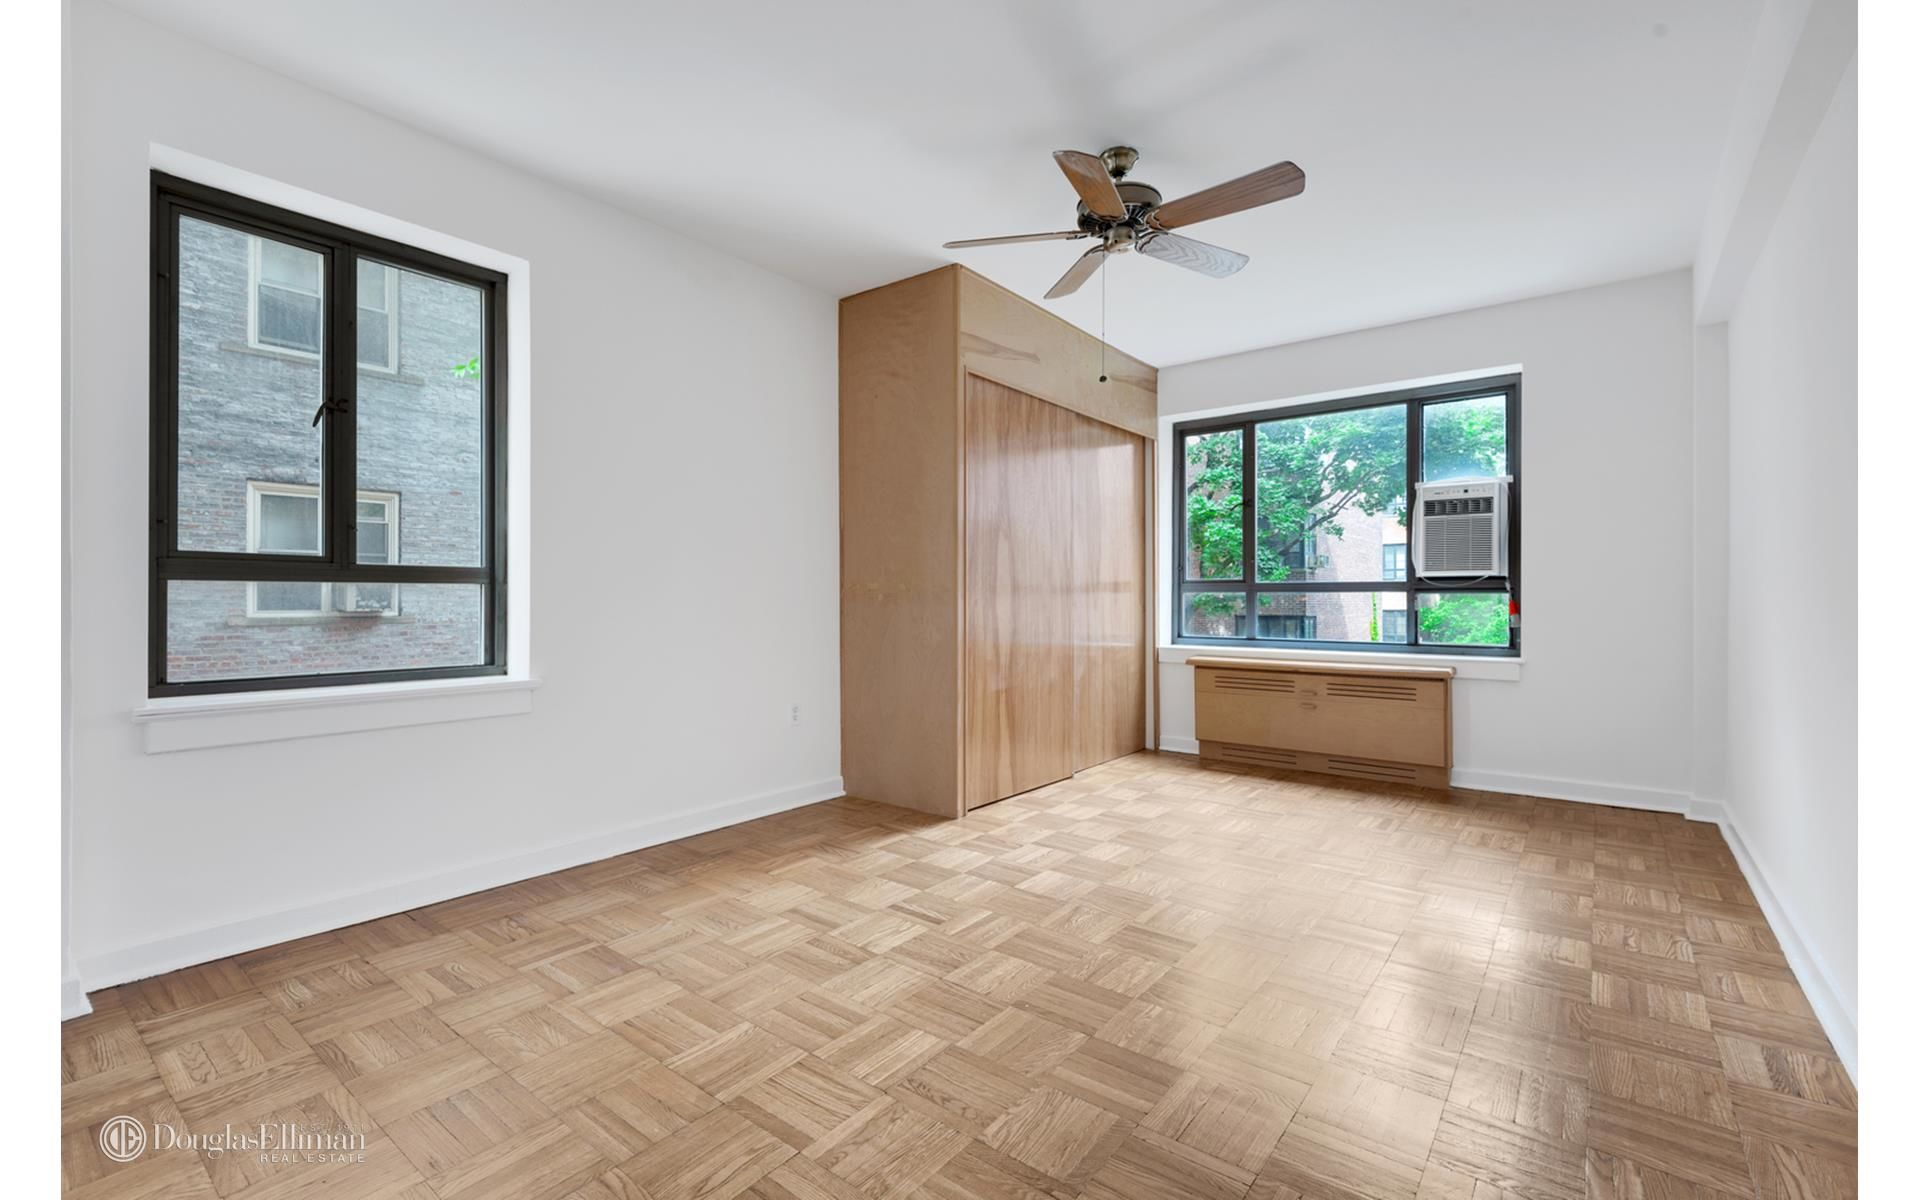 130 8th Ave, APT 2A Photo 7 - ELLIMAN-3787631